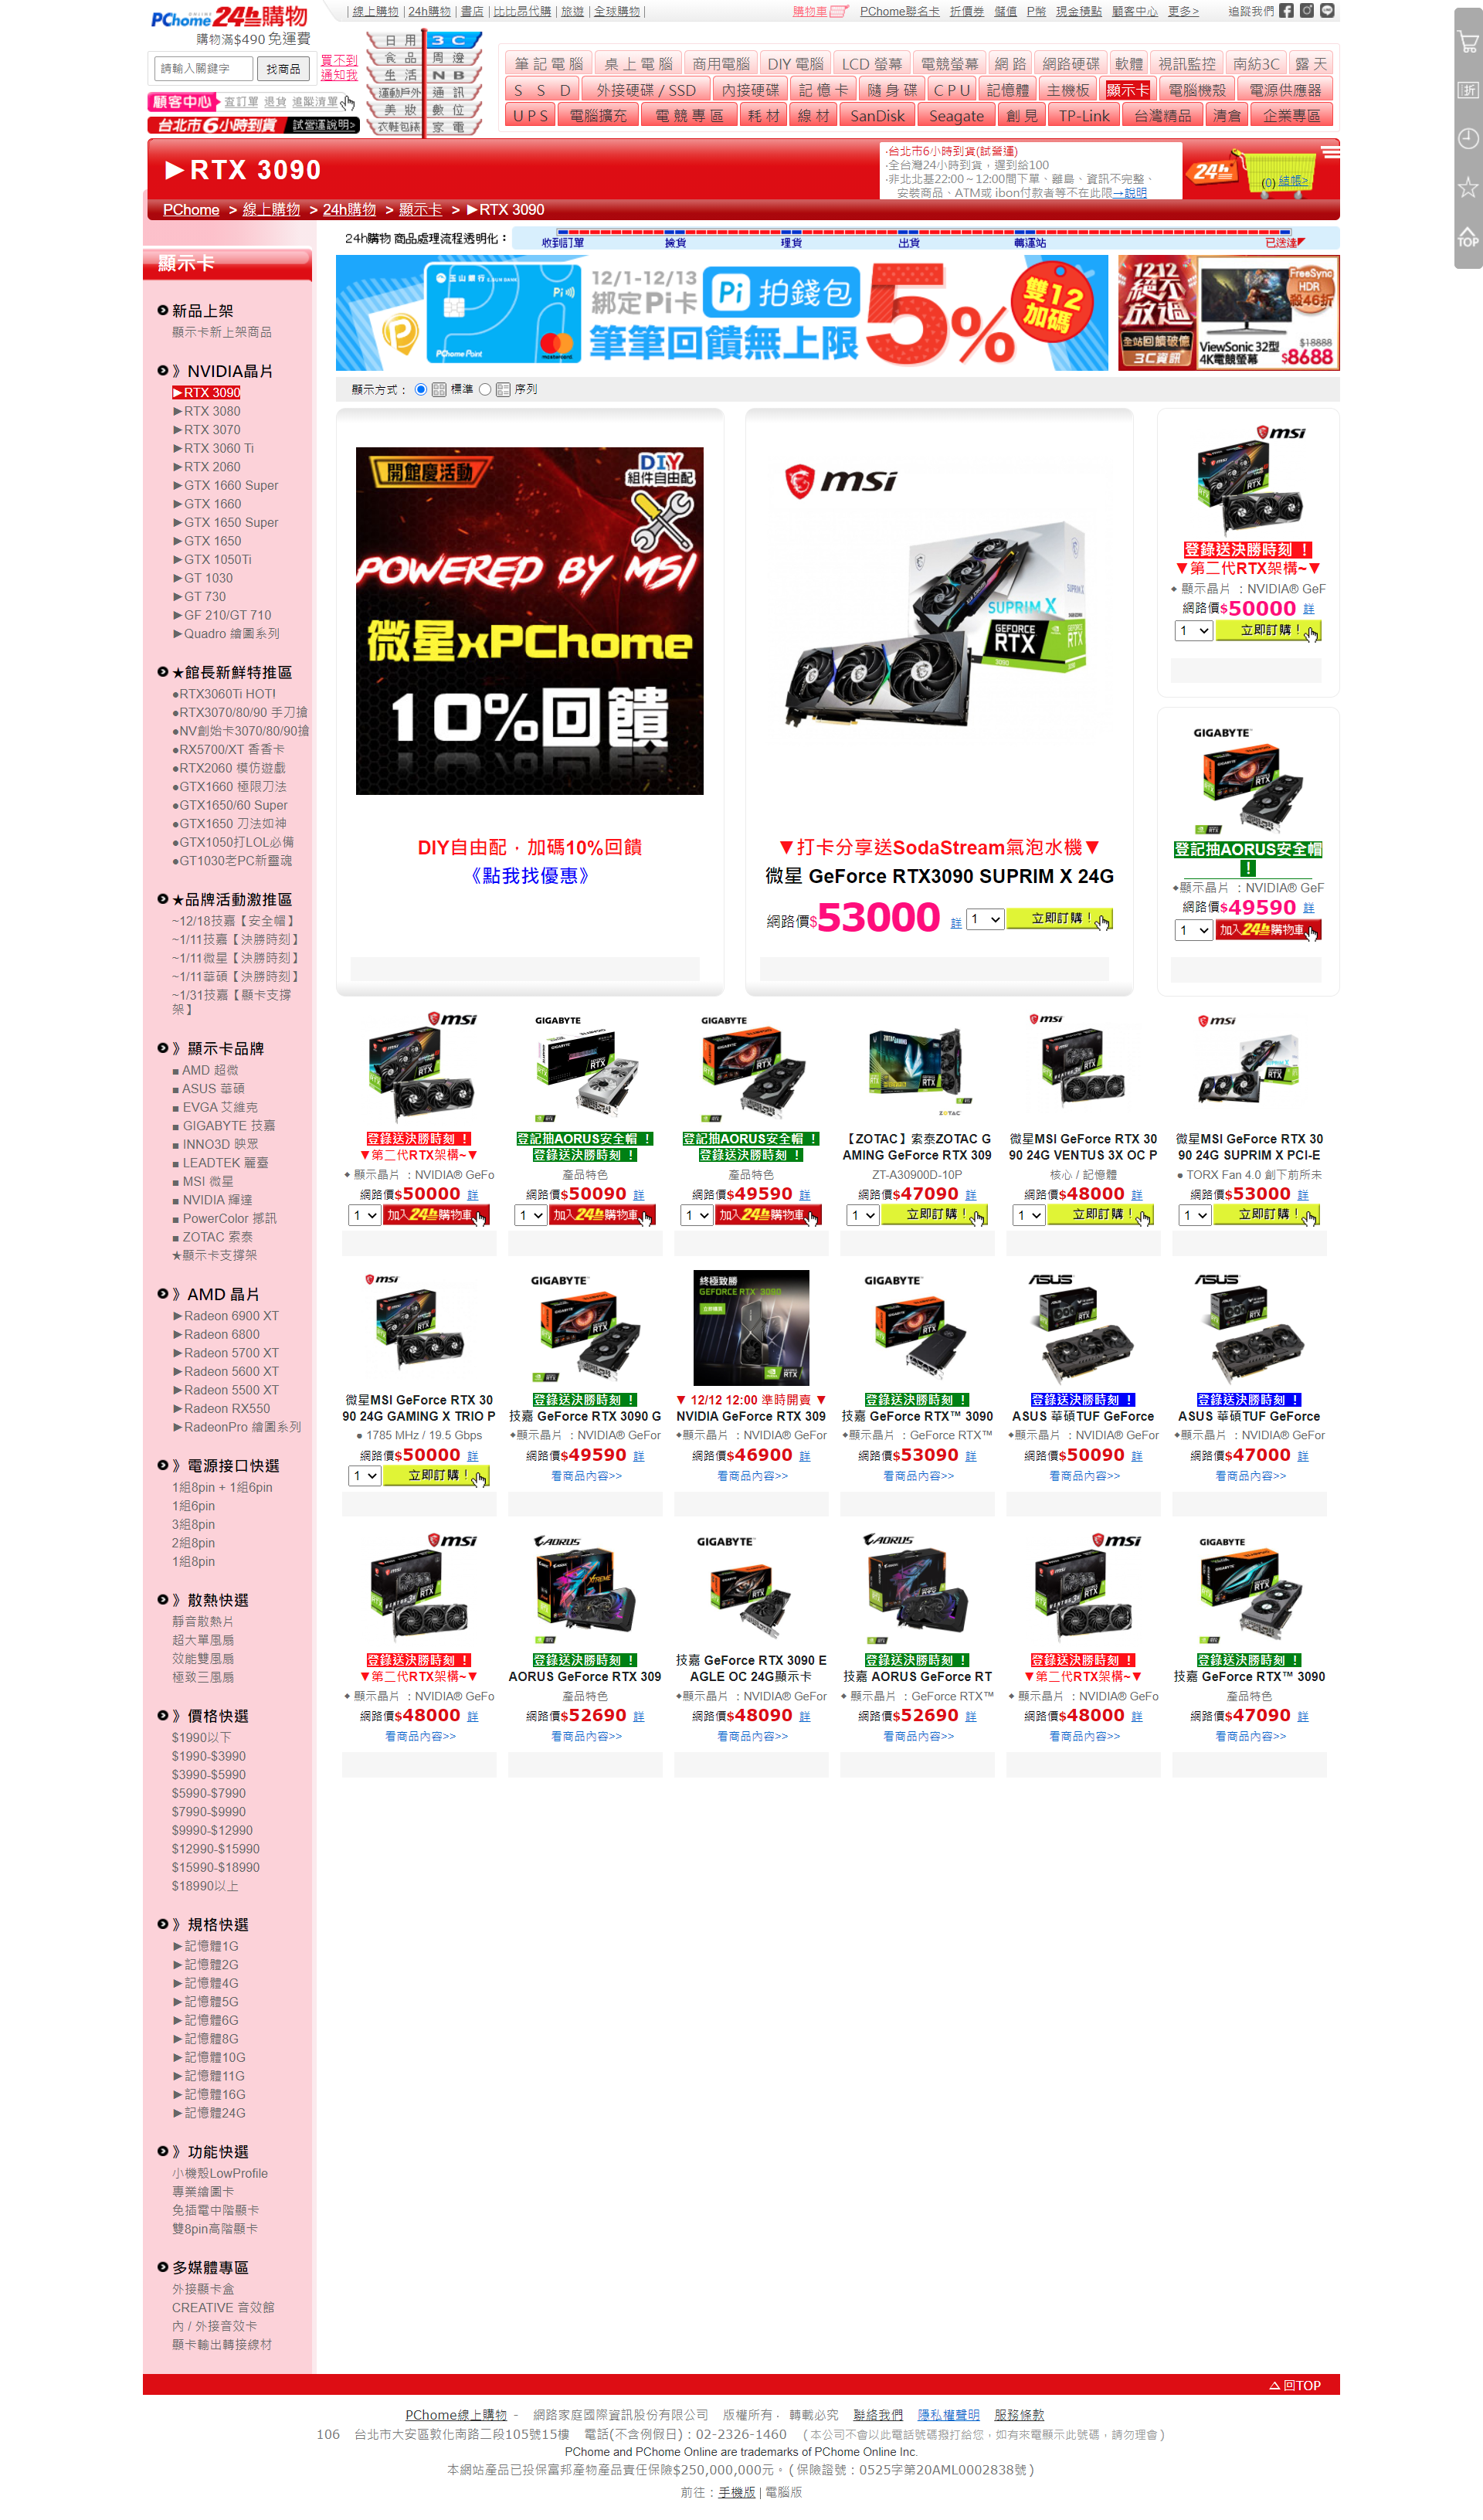 screencapture-24h-pchome-tw-store-DRADHJ-2020-12-10-19_53_28.png